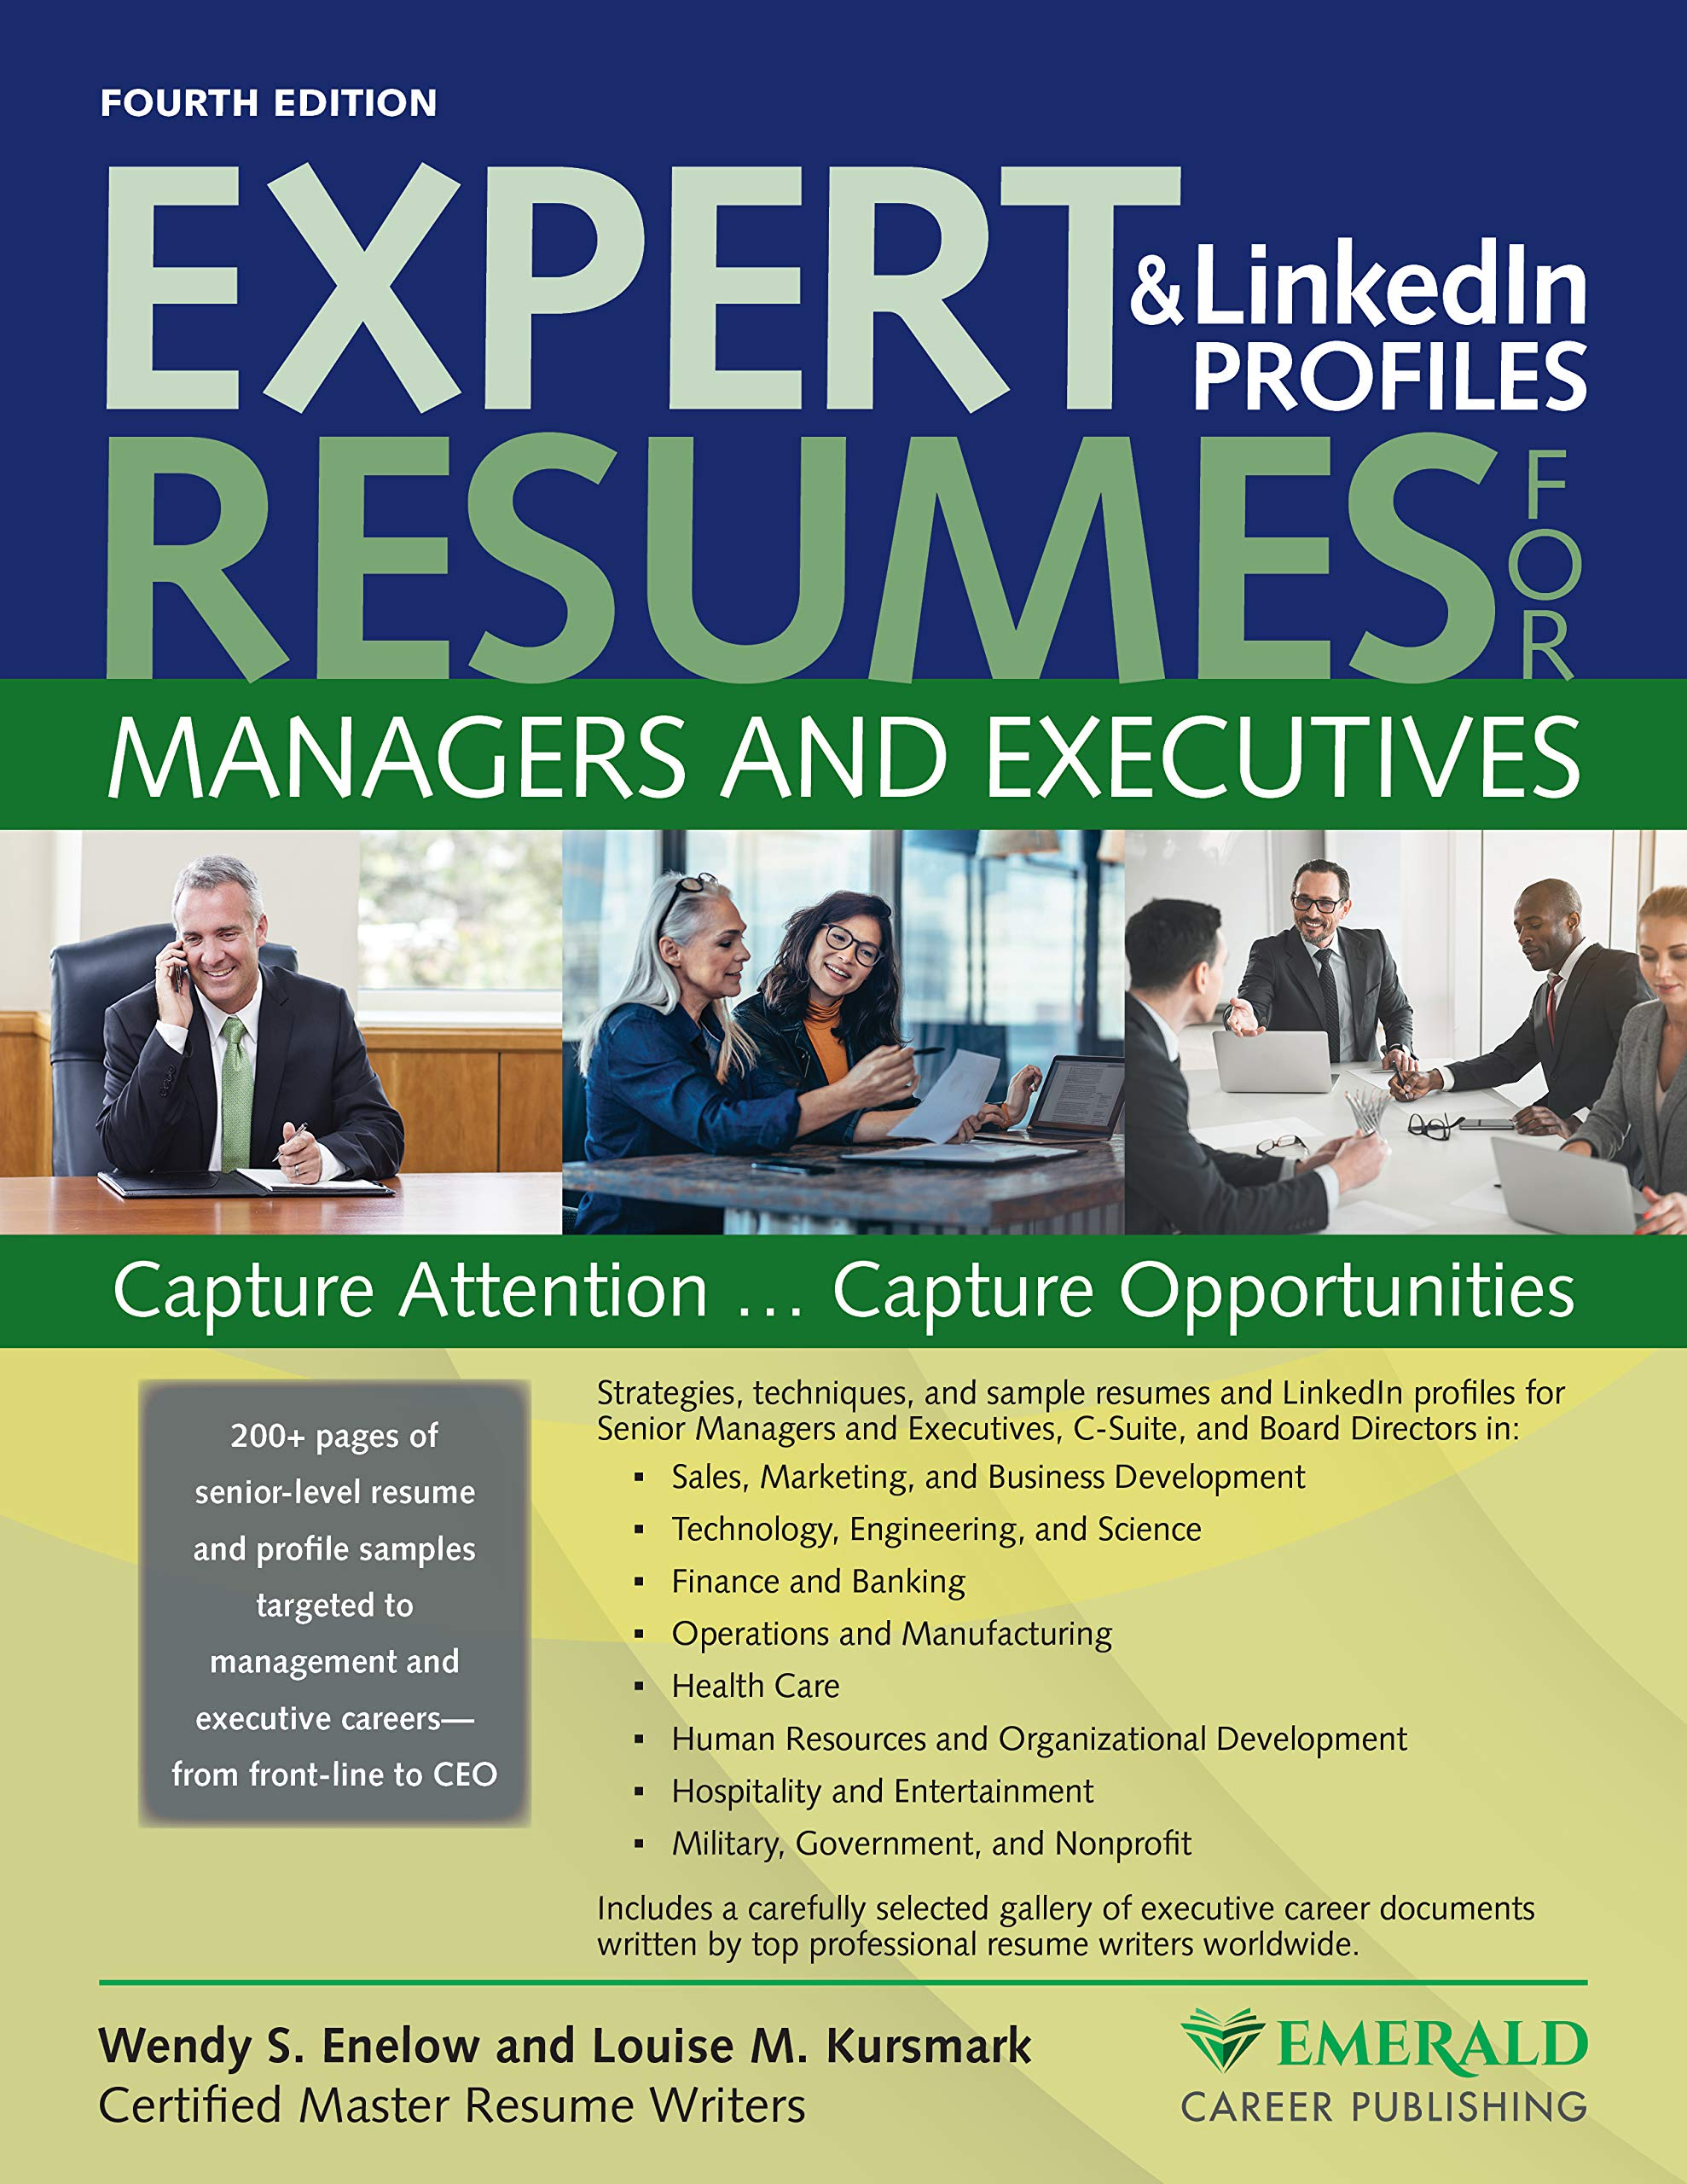 Expert Resumes And Linkedin Profiles For Managers Executives Enelow Wendy Kursmark Louise 9780996680363 Amazon Com Books